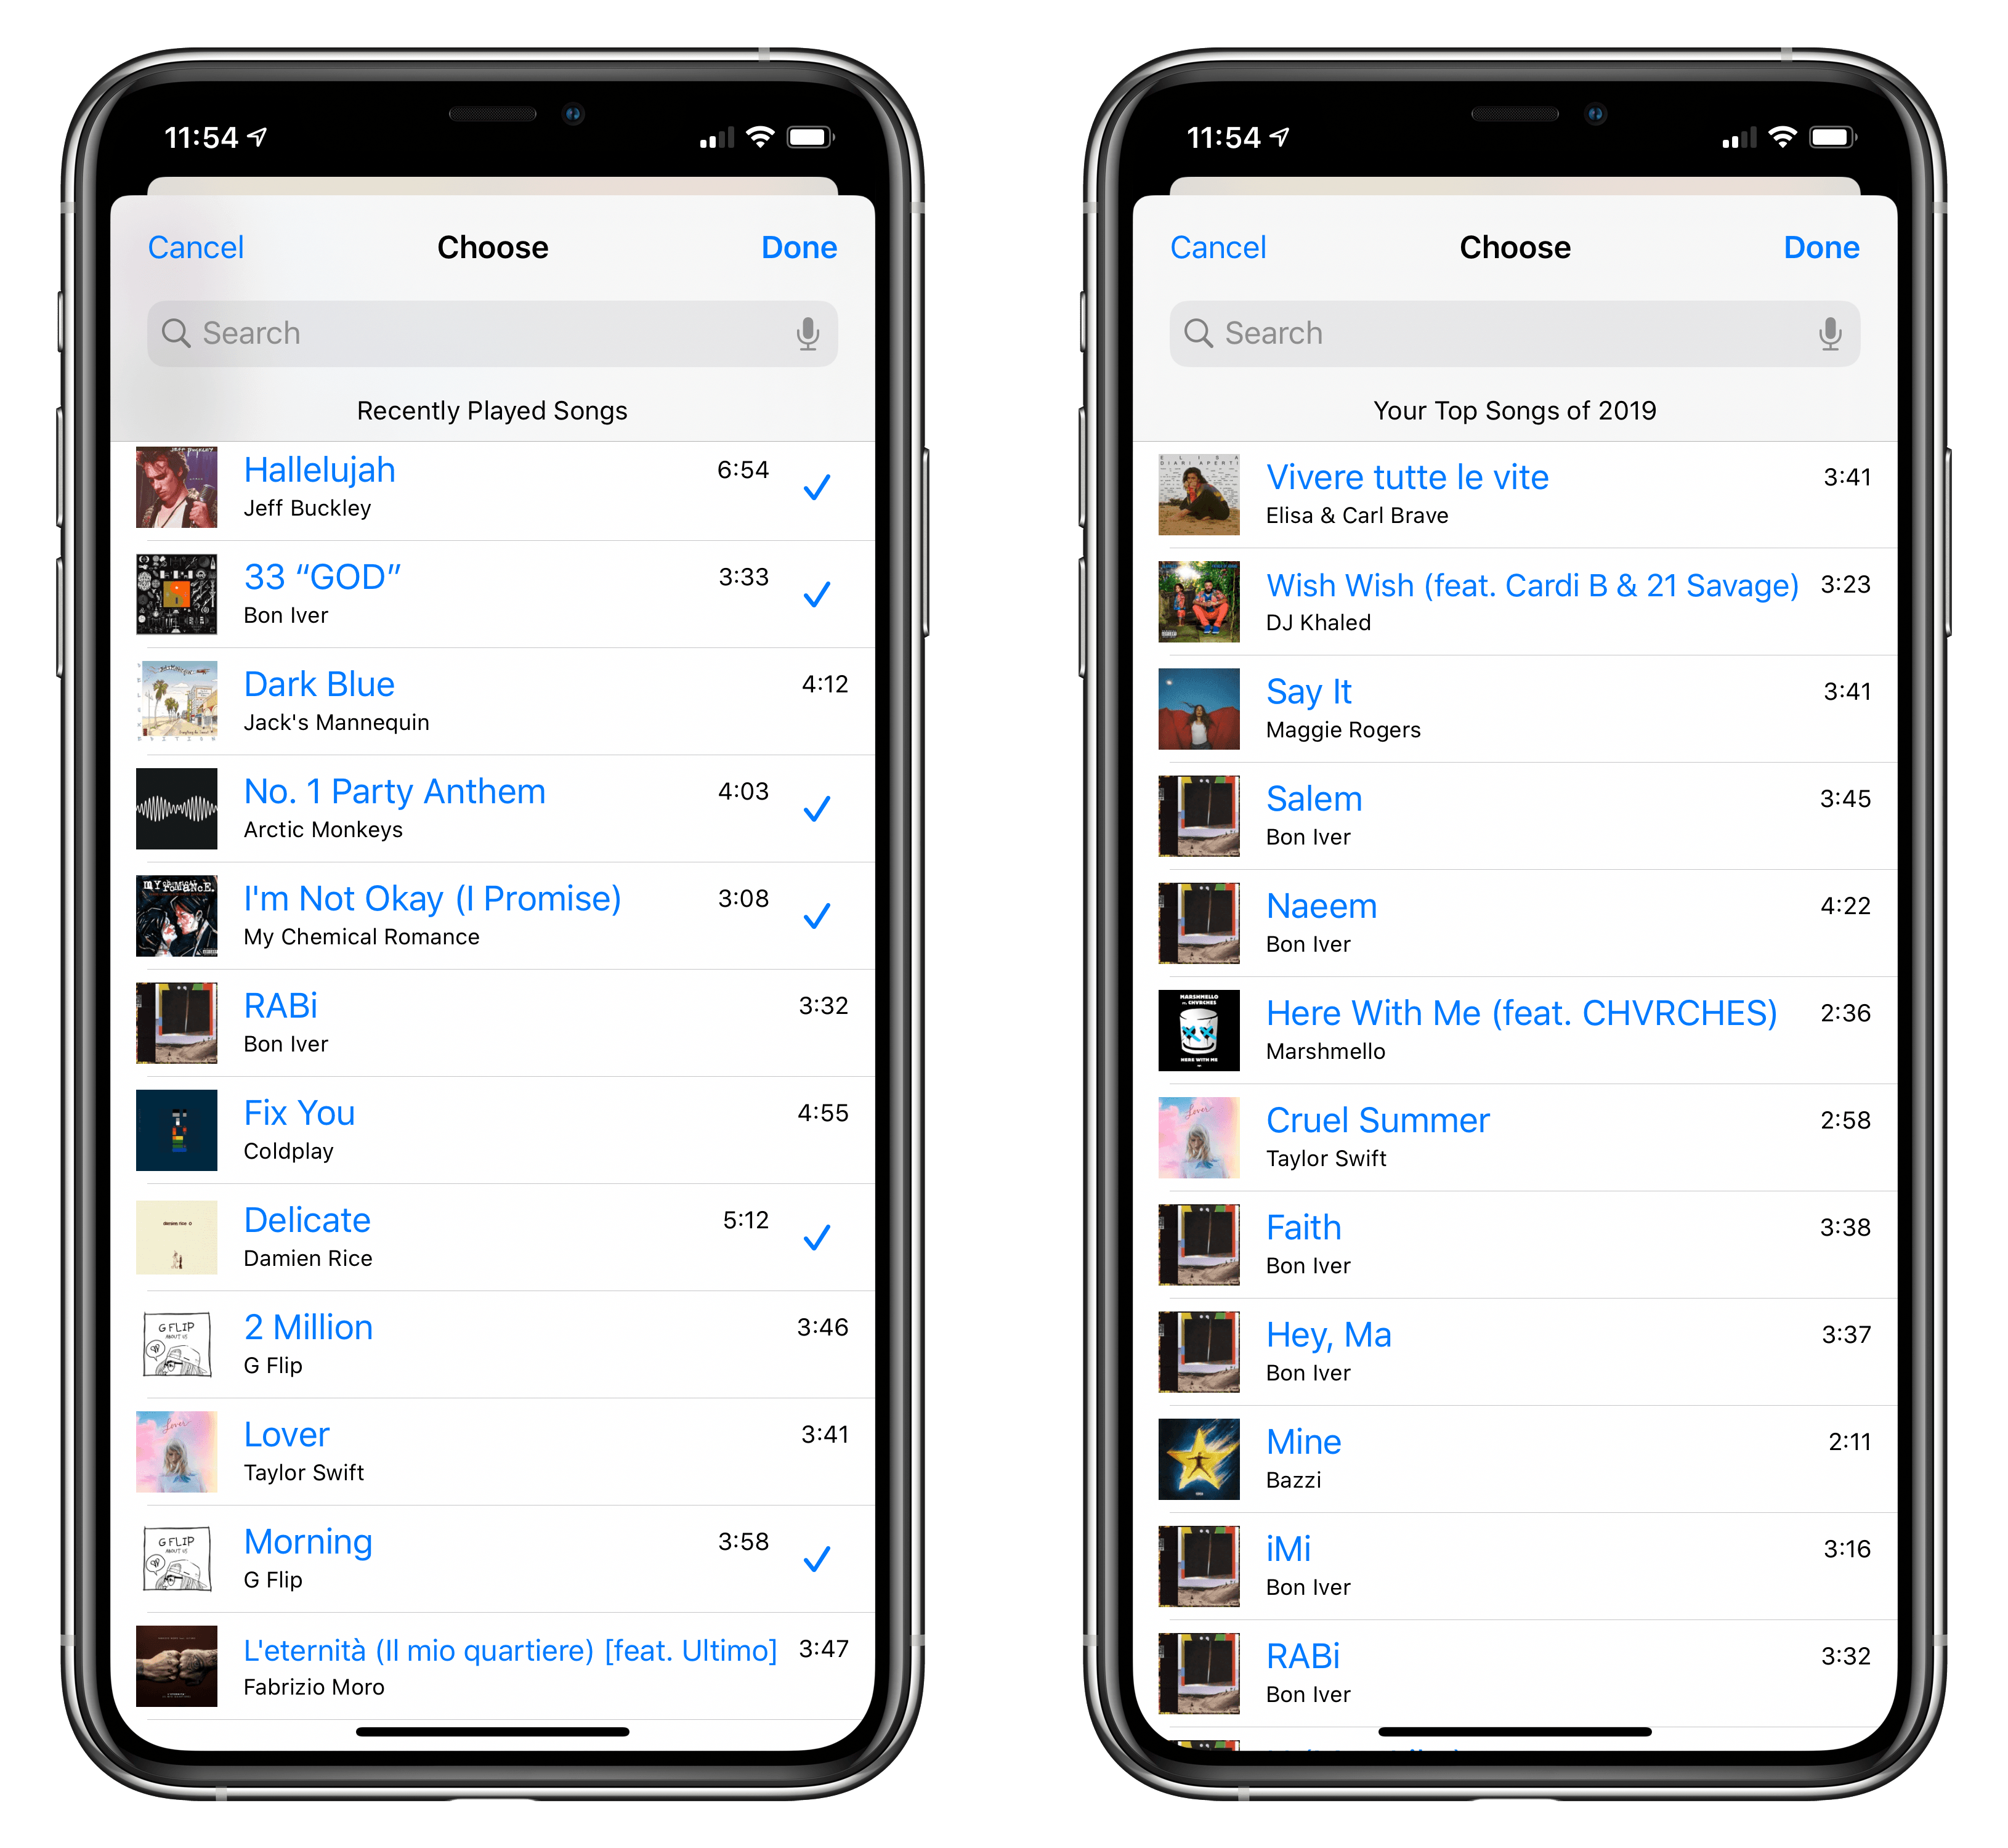 For certain smart mixes, you can pick which songs to play directly from MusicBot.